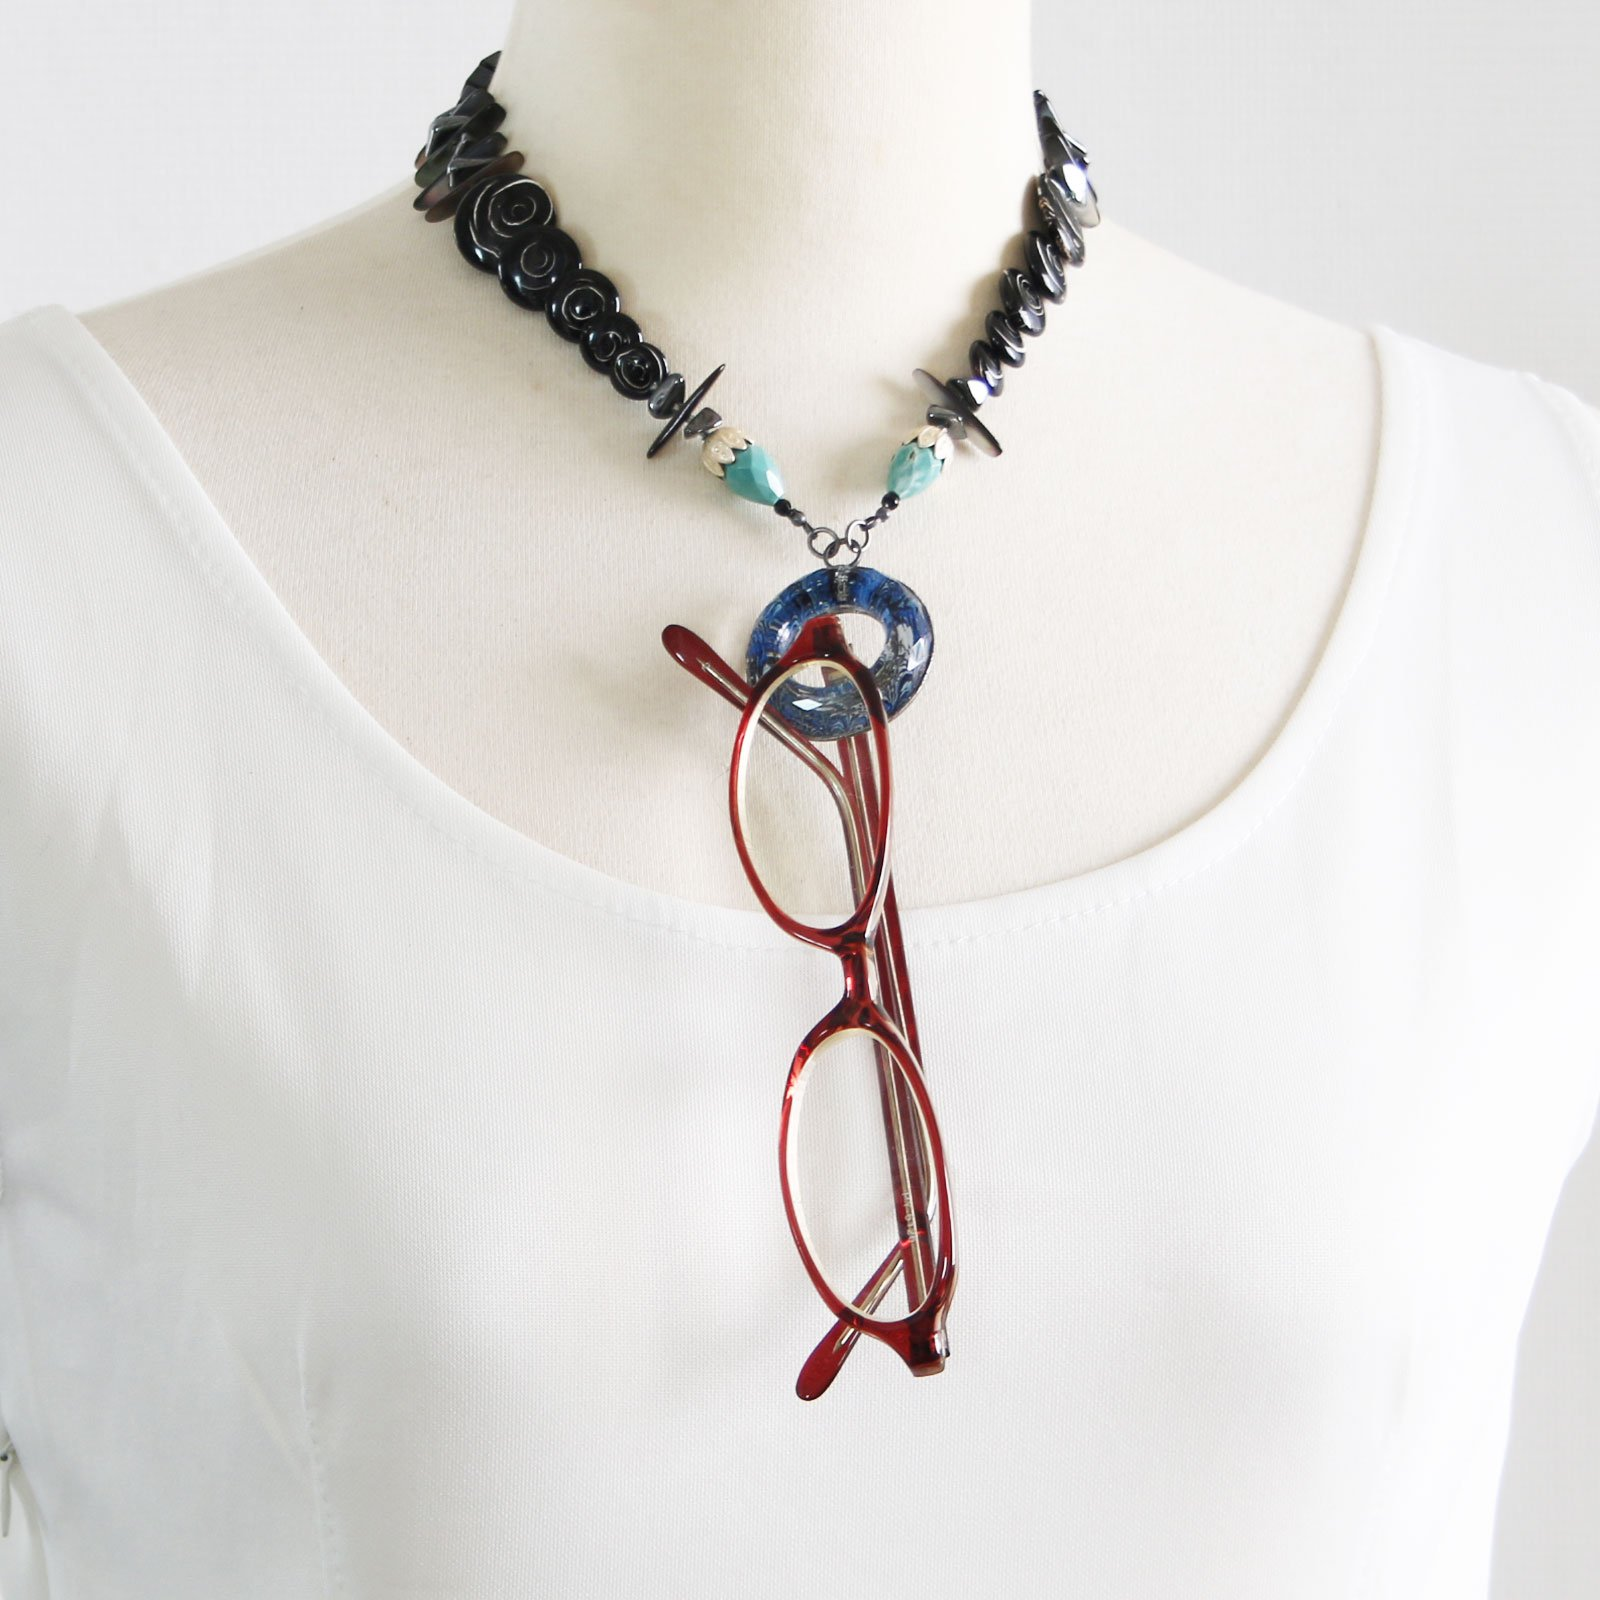 Tamarusan Eyeglass Holder Natural Stone Coral Turquoise Shell Onyx by TAMARUSAN (Image #5)